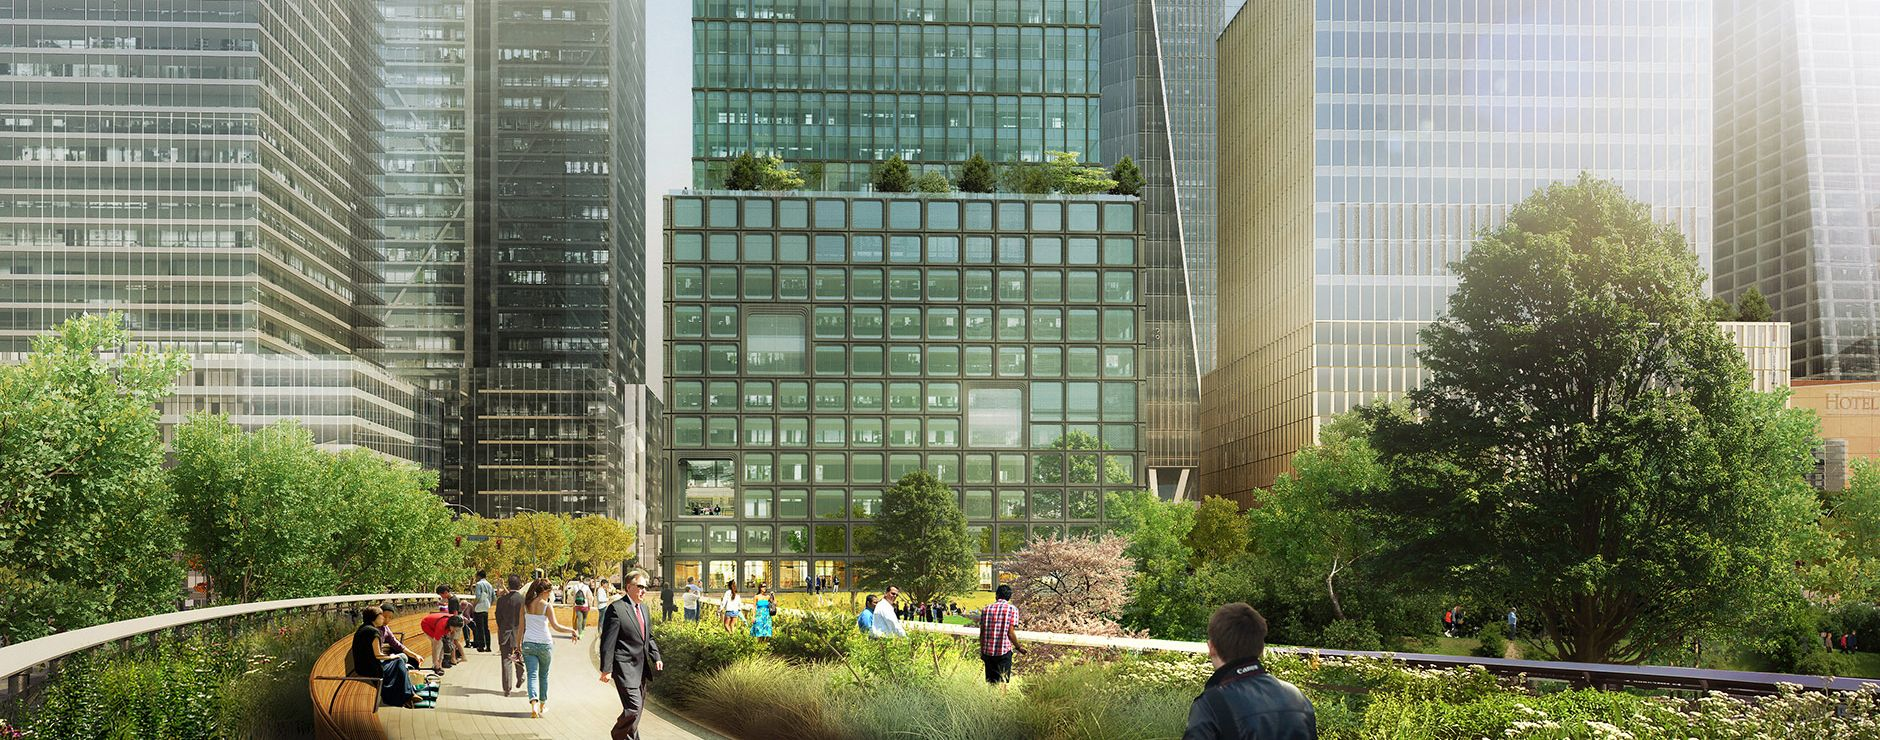 55-hudson-yards-high-line-view-courtesy-related-oxford-mitsui-1-1880x740